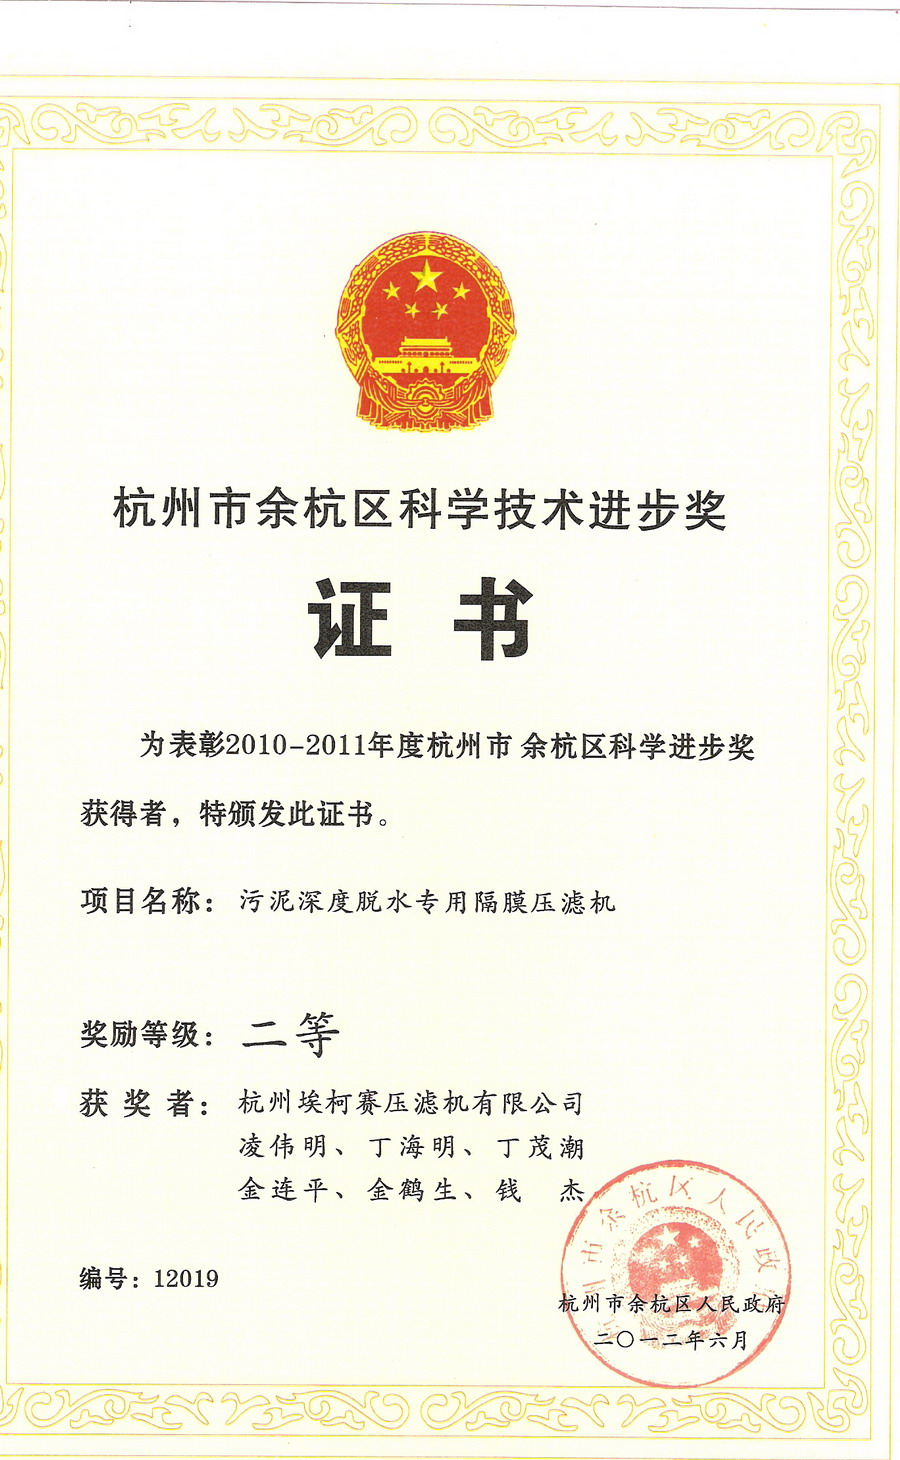 certificate science and technology of filter press in YUHANG DISTRICT